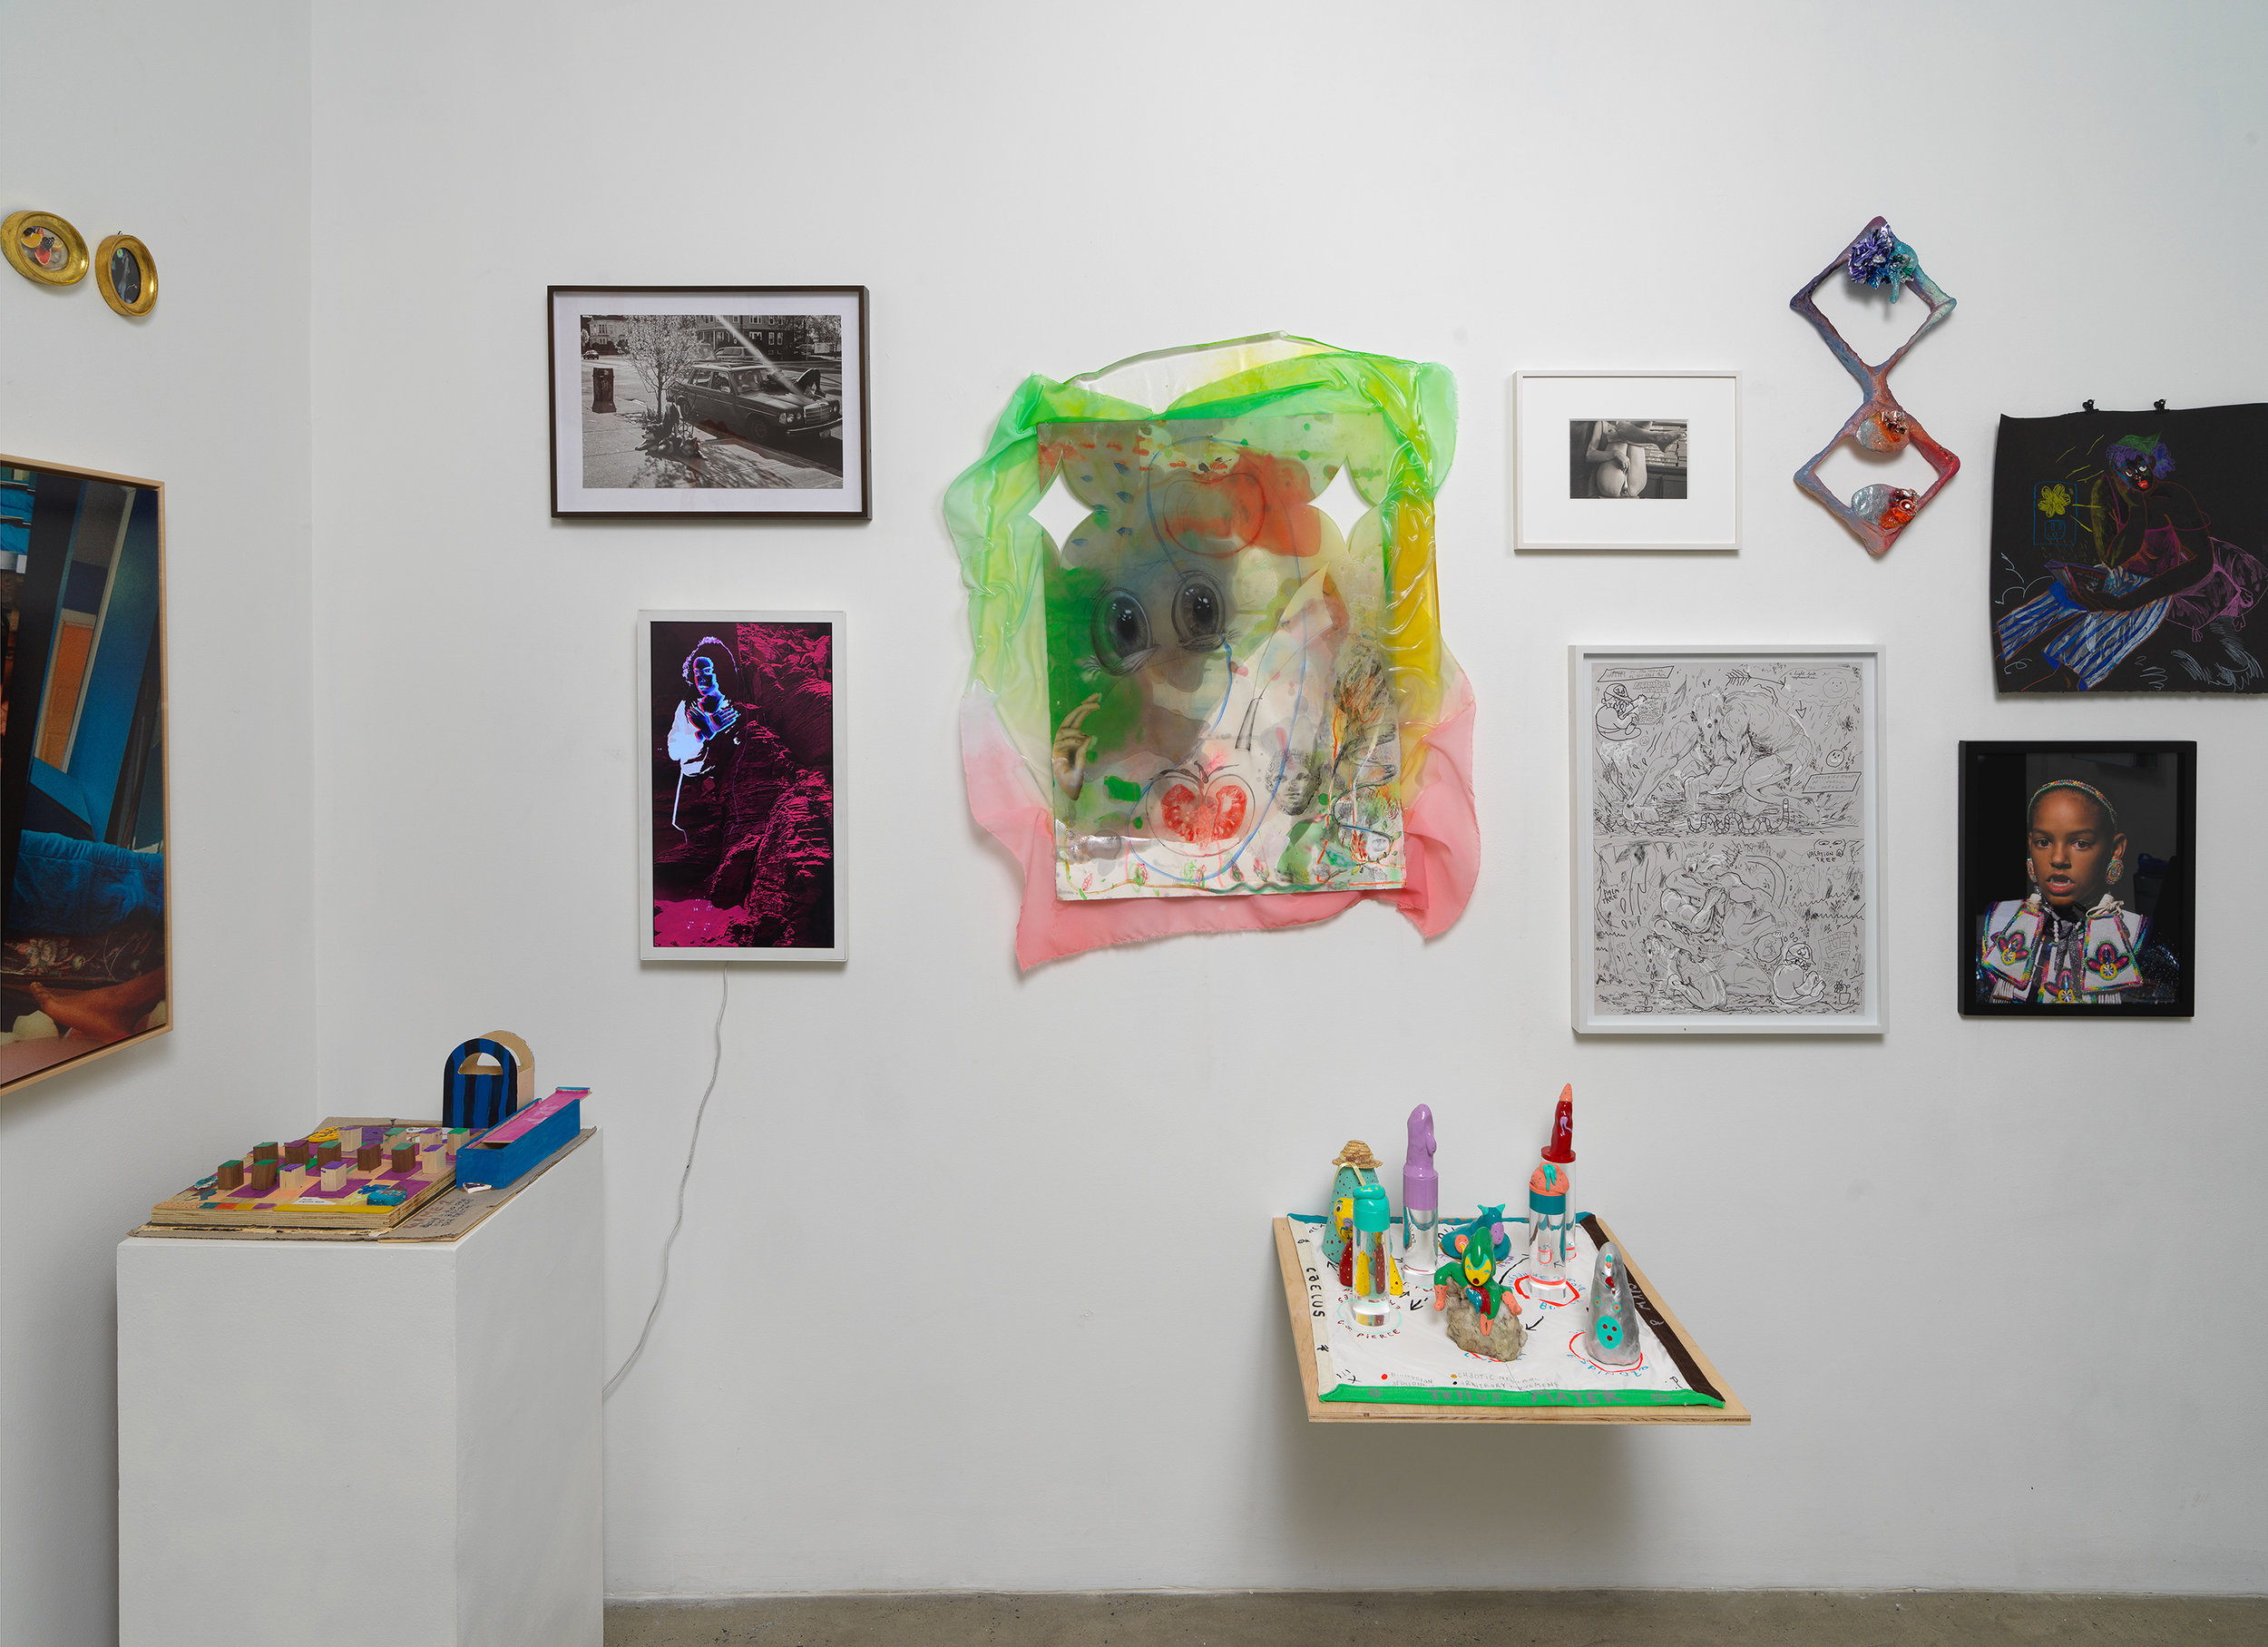 Installation view of 'Can You Dream It' featuring salon-style hanging of multimedia works by various artists, pedestal and shelf-based sculpture